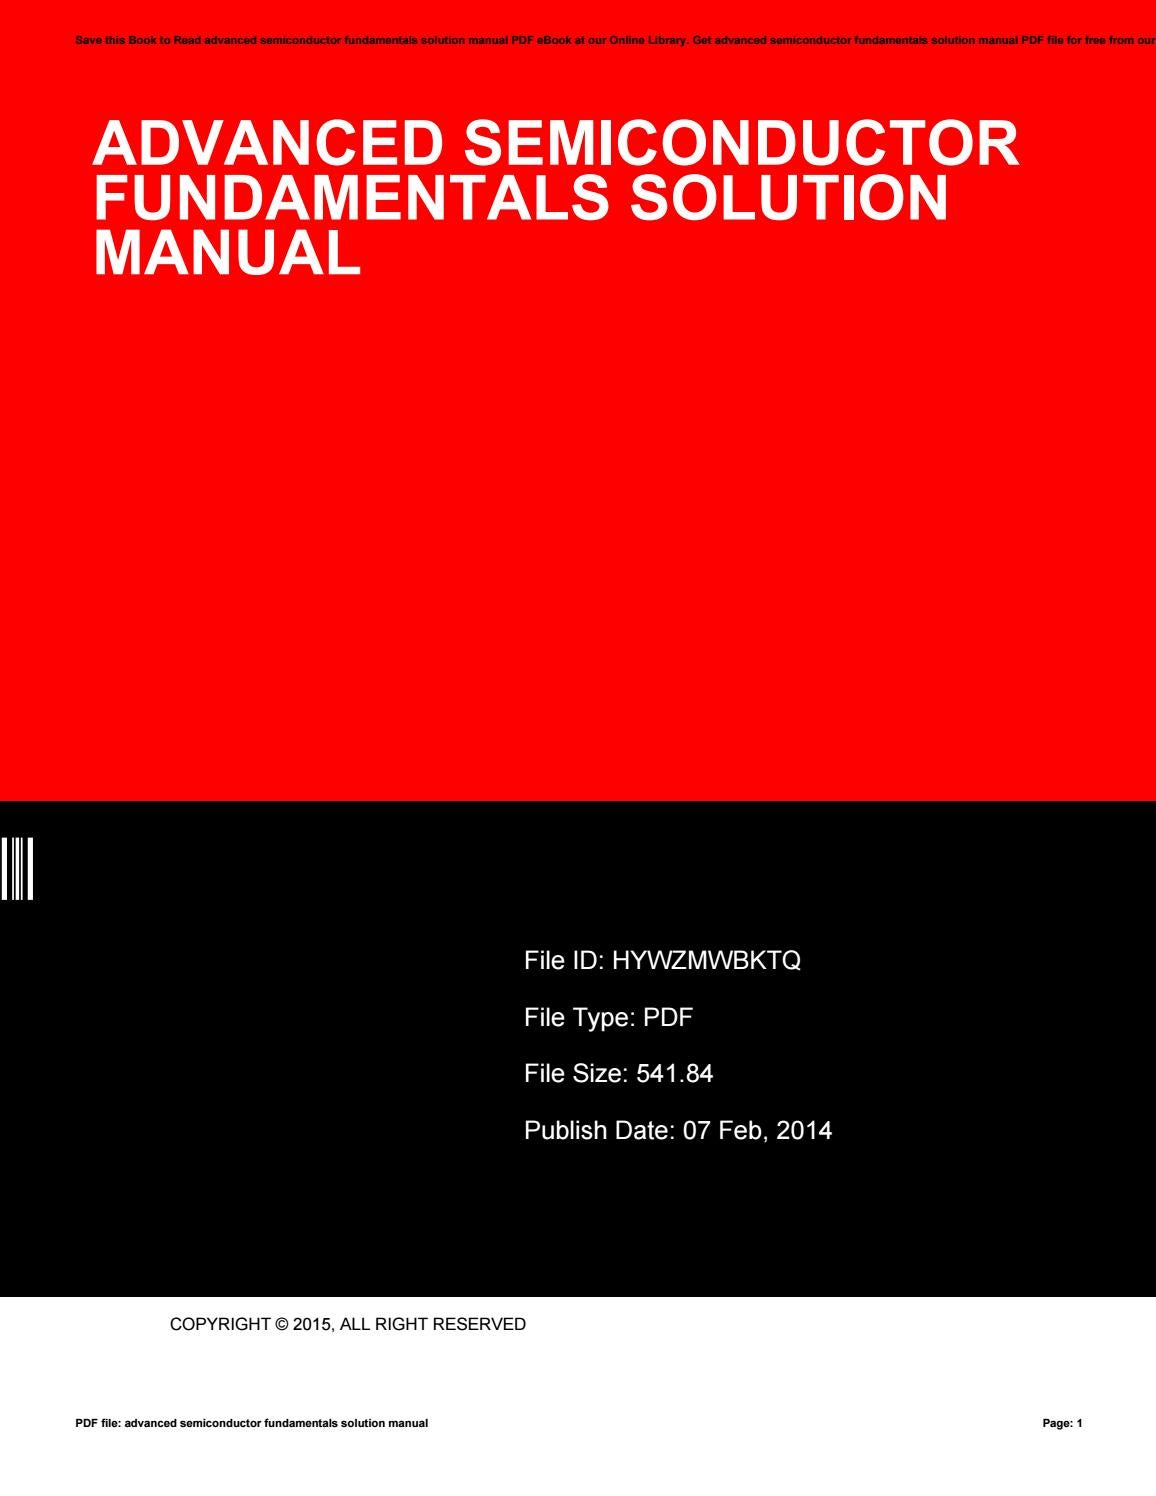 Advanced semiconductor fundamentals solution manual by Antoinette Santiago  - issuu